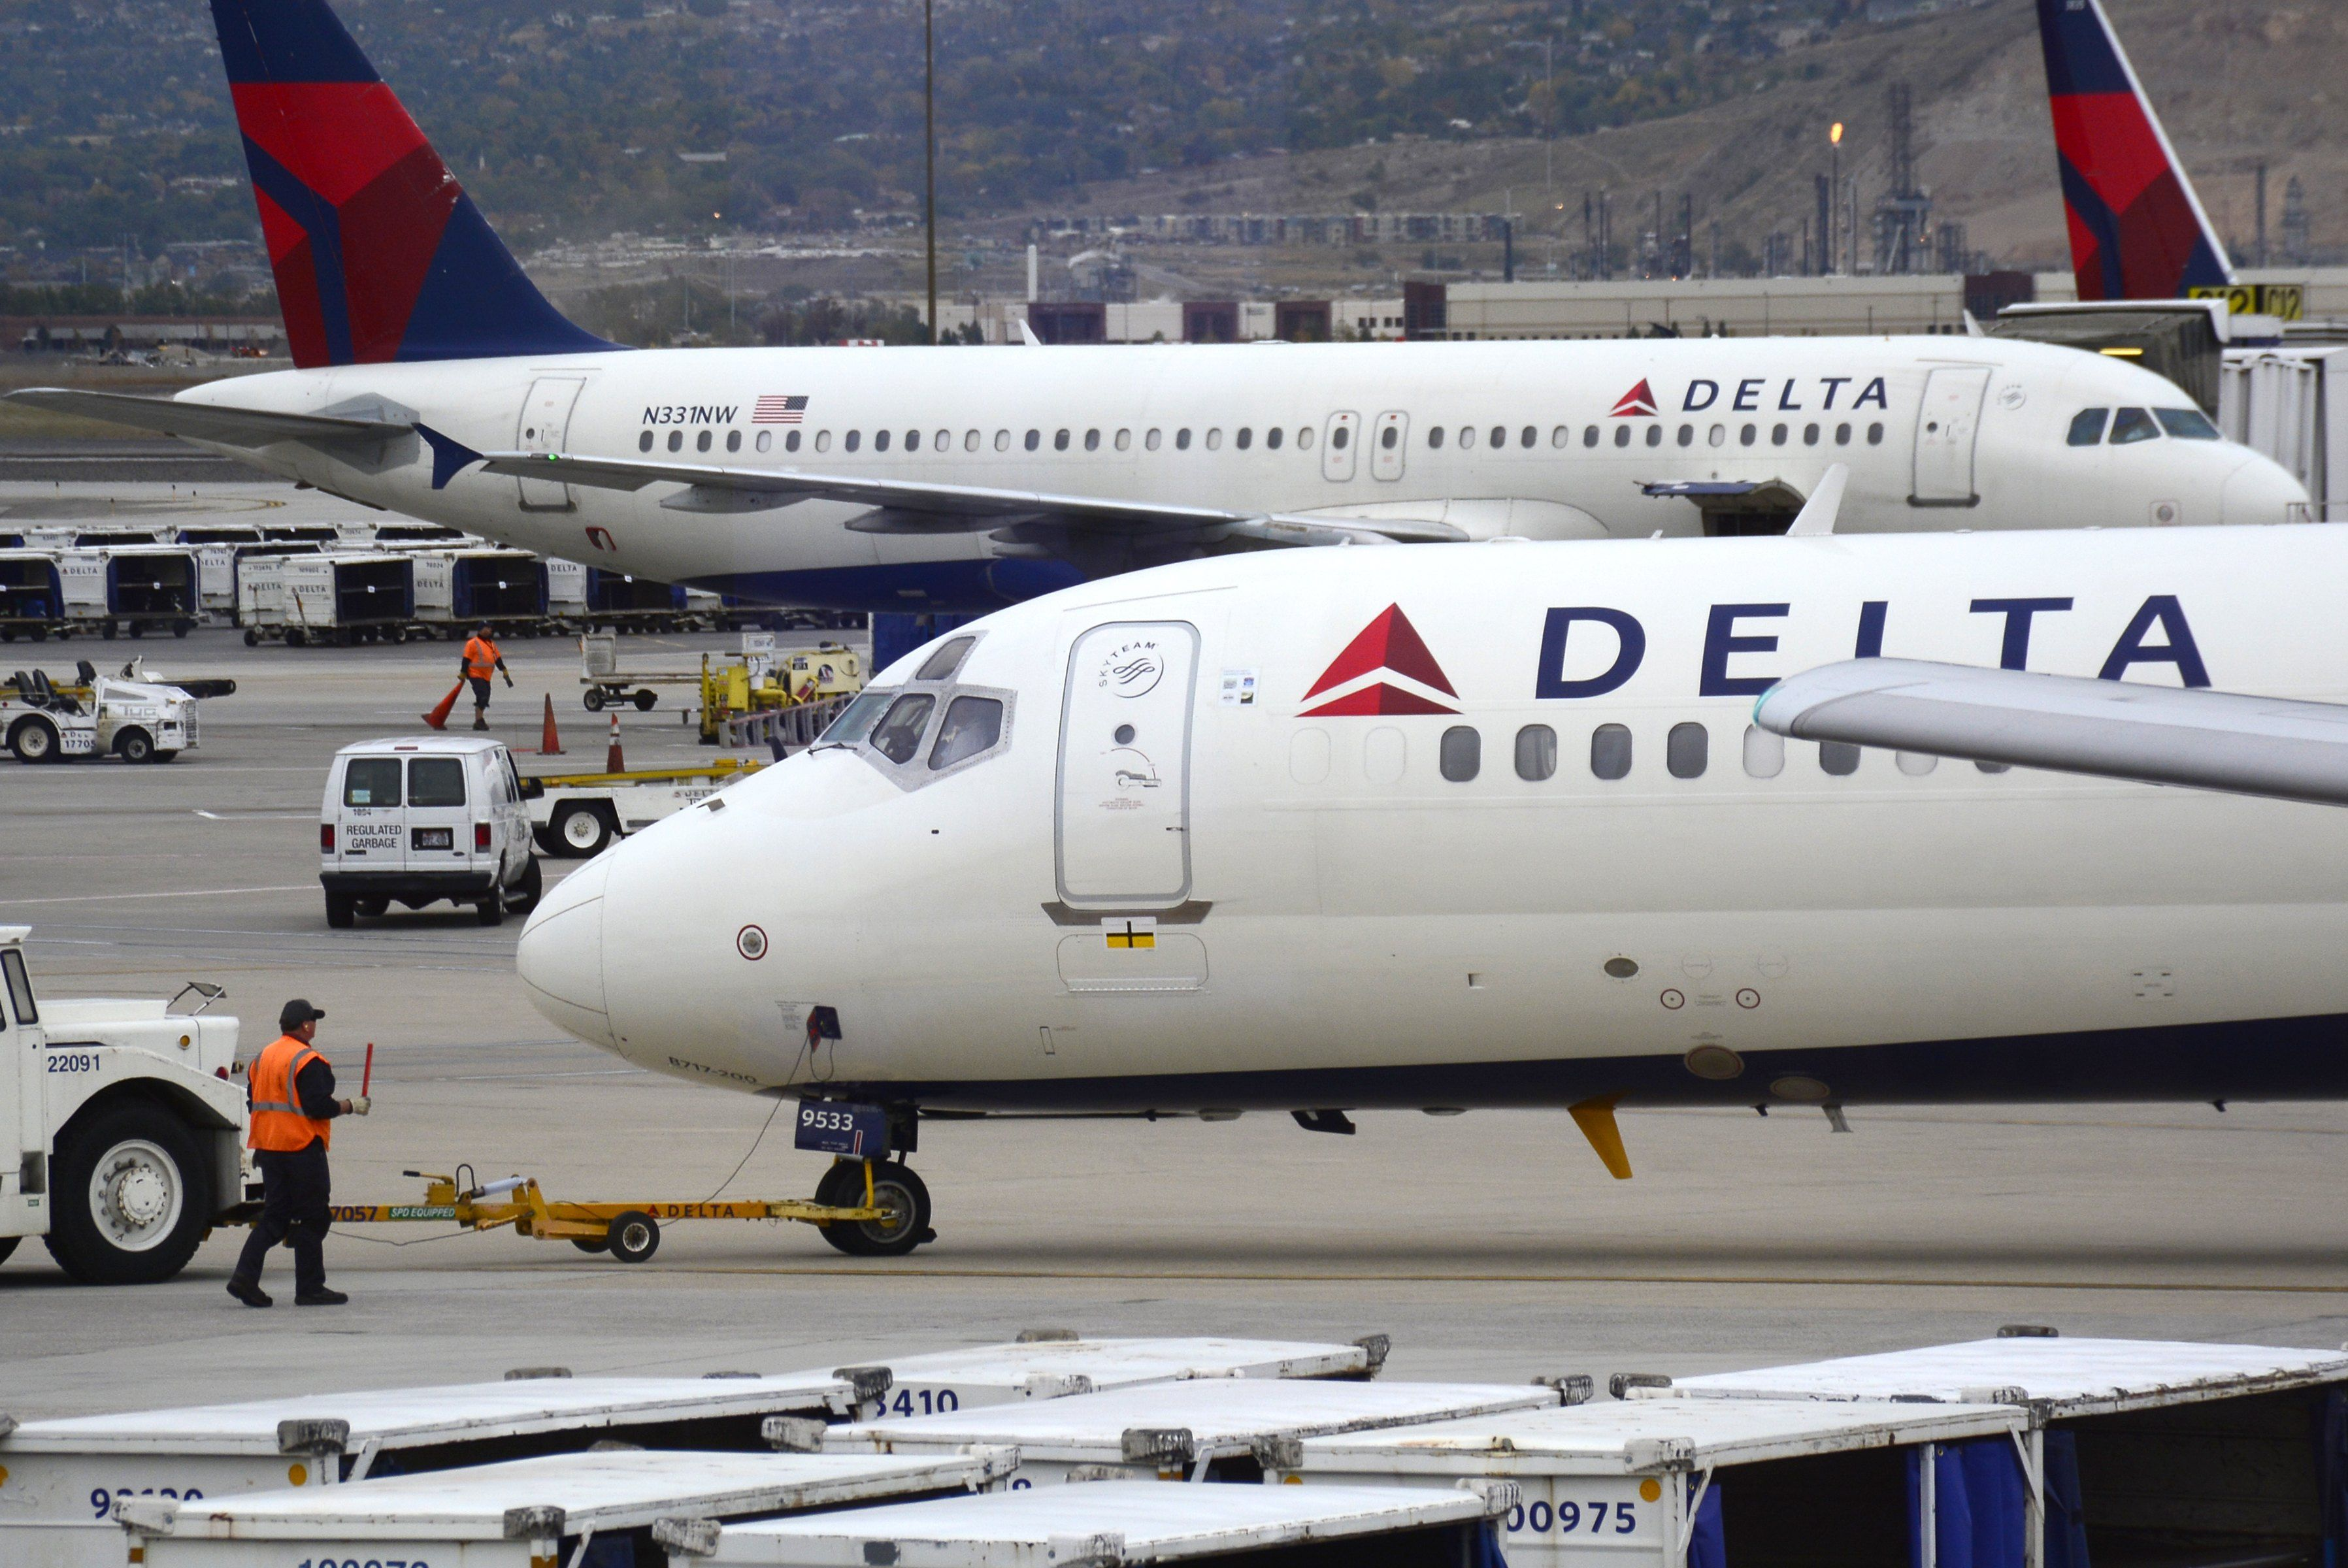 Delta Airlines Paid One Family 11,000 to Give Up Their Airline Seats